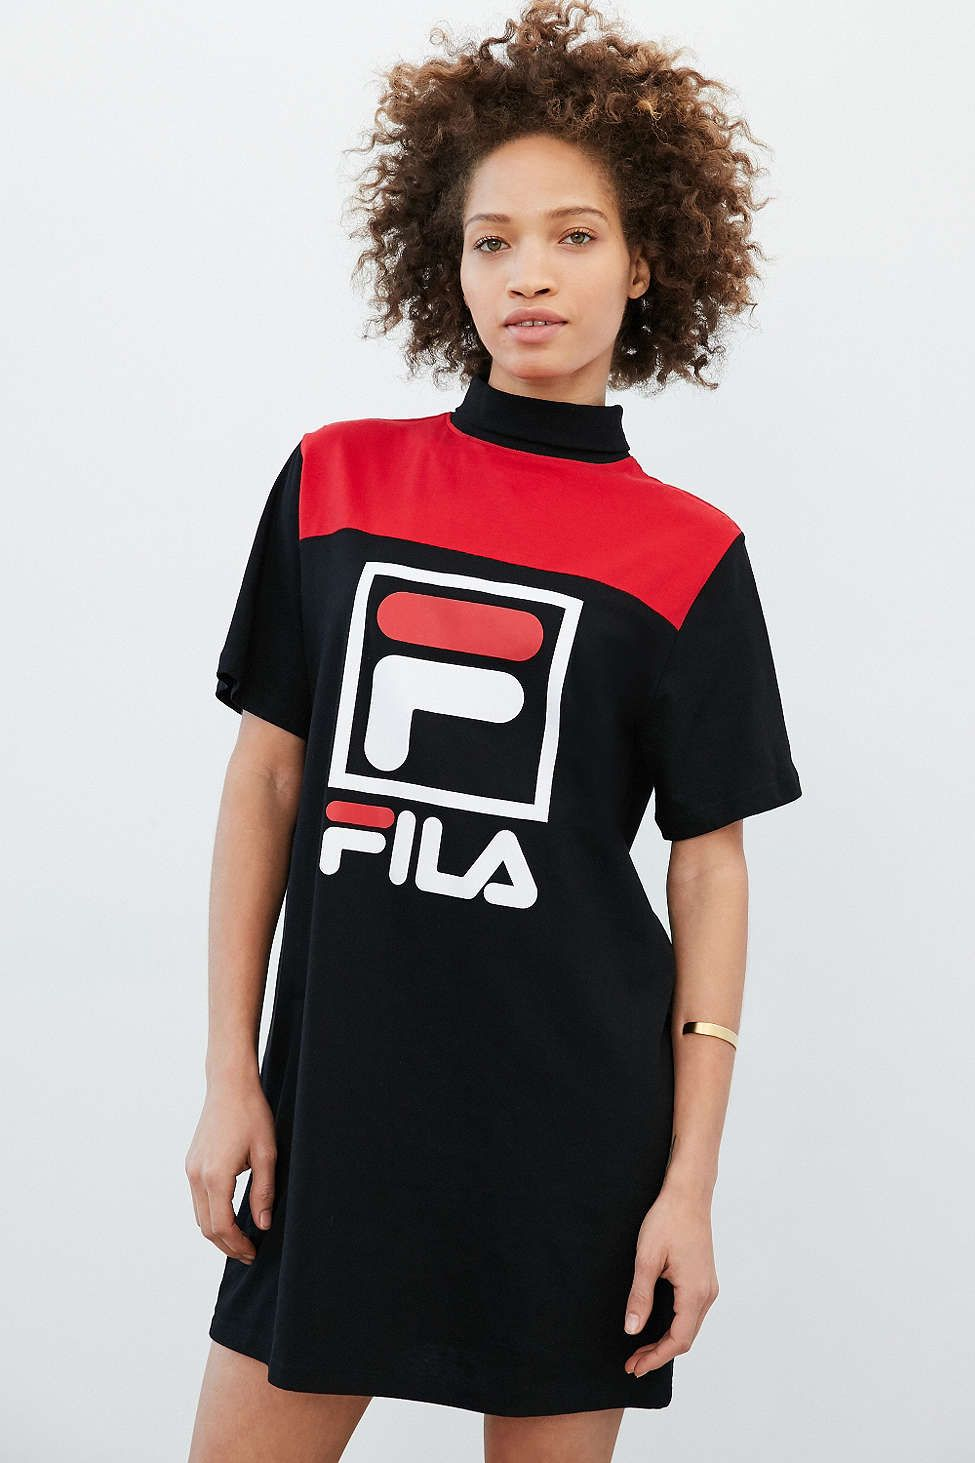 fila outfits. FILA + UO Jessica T-Shirt Dress, LOVE MIL VEZES Fila Outfits